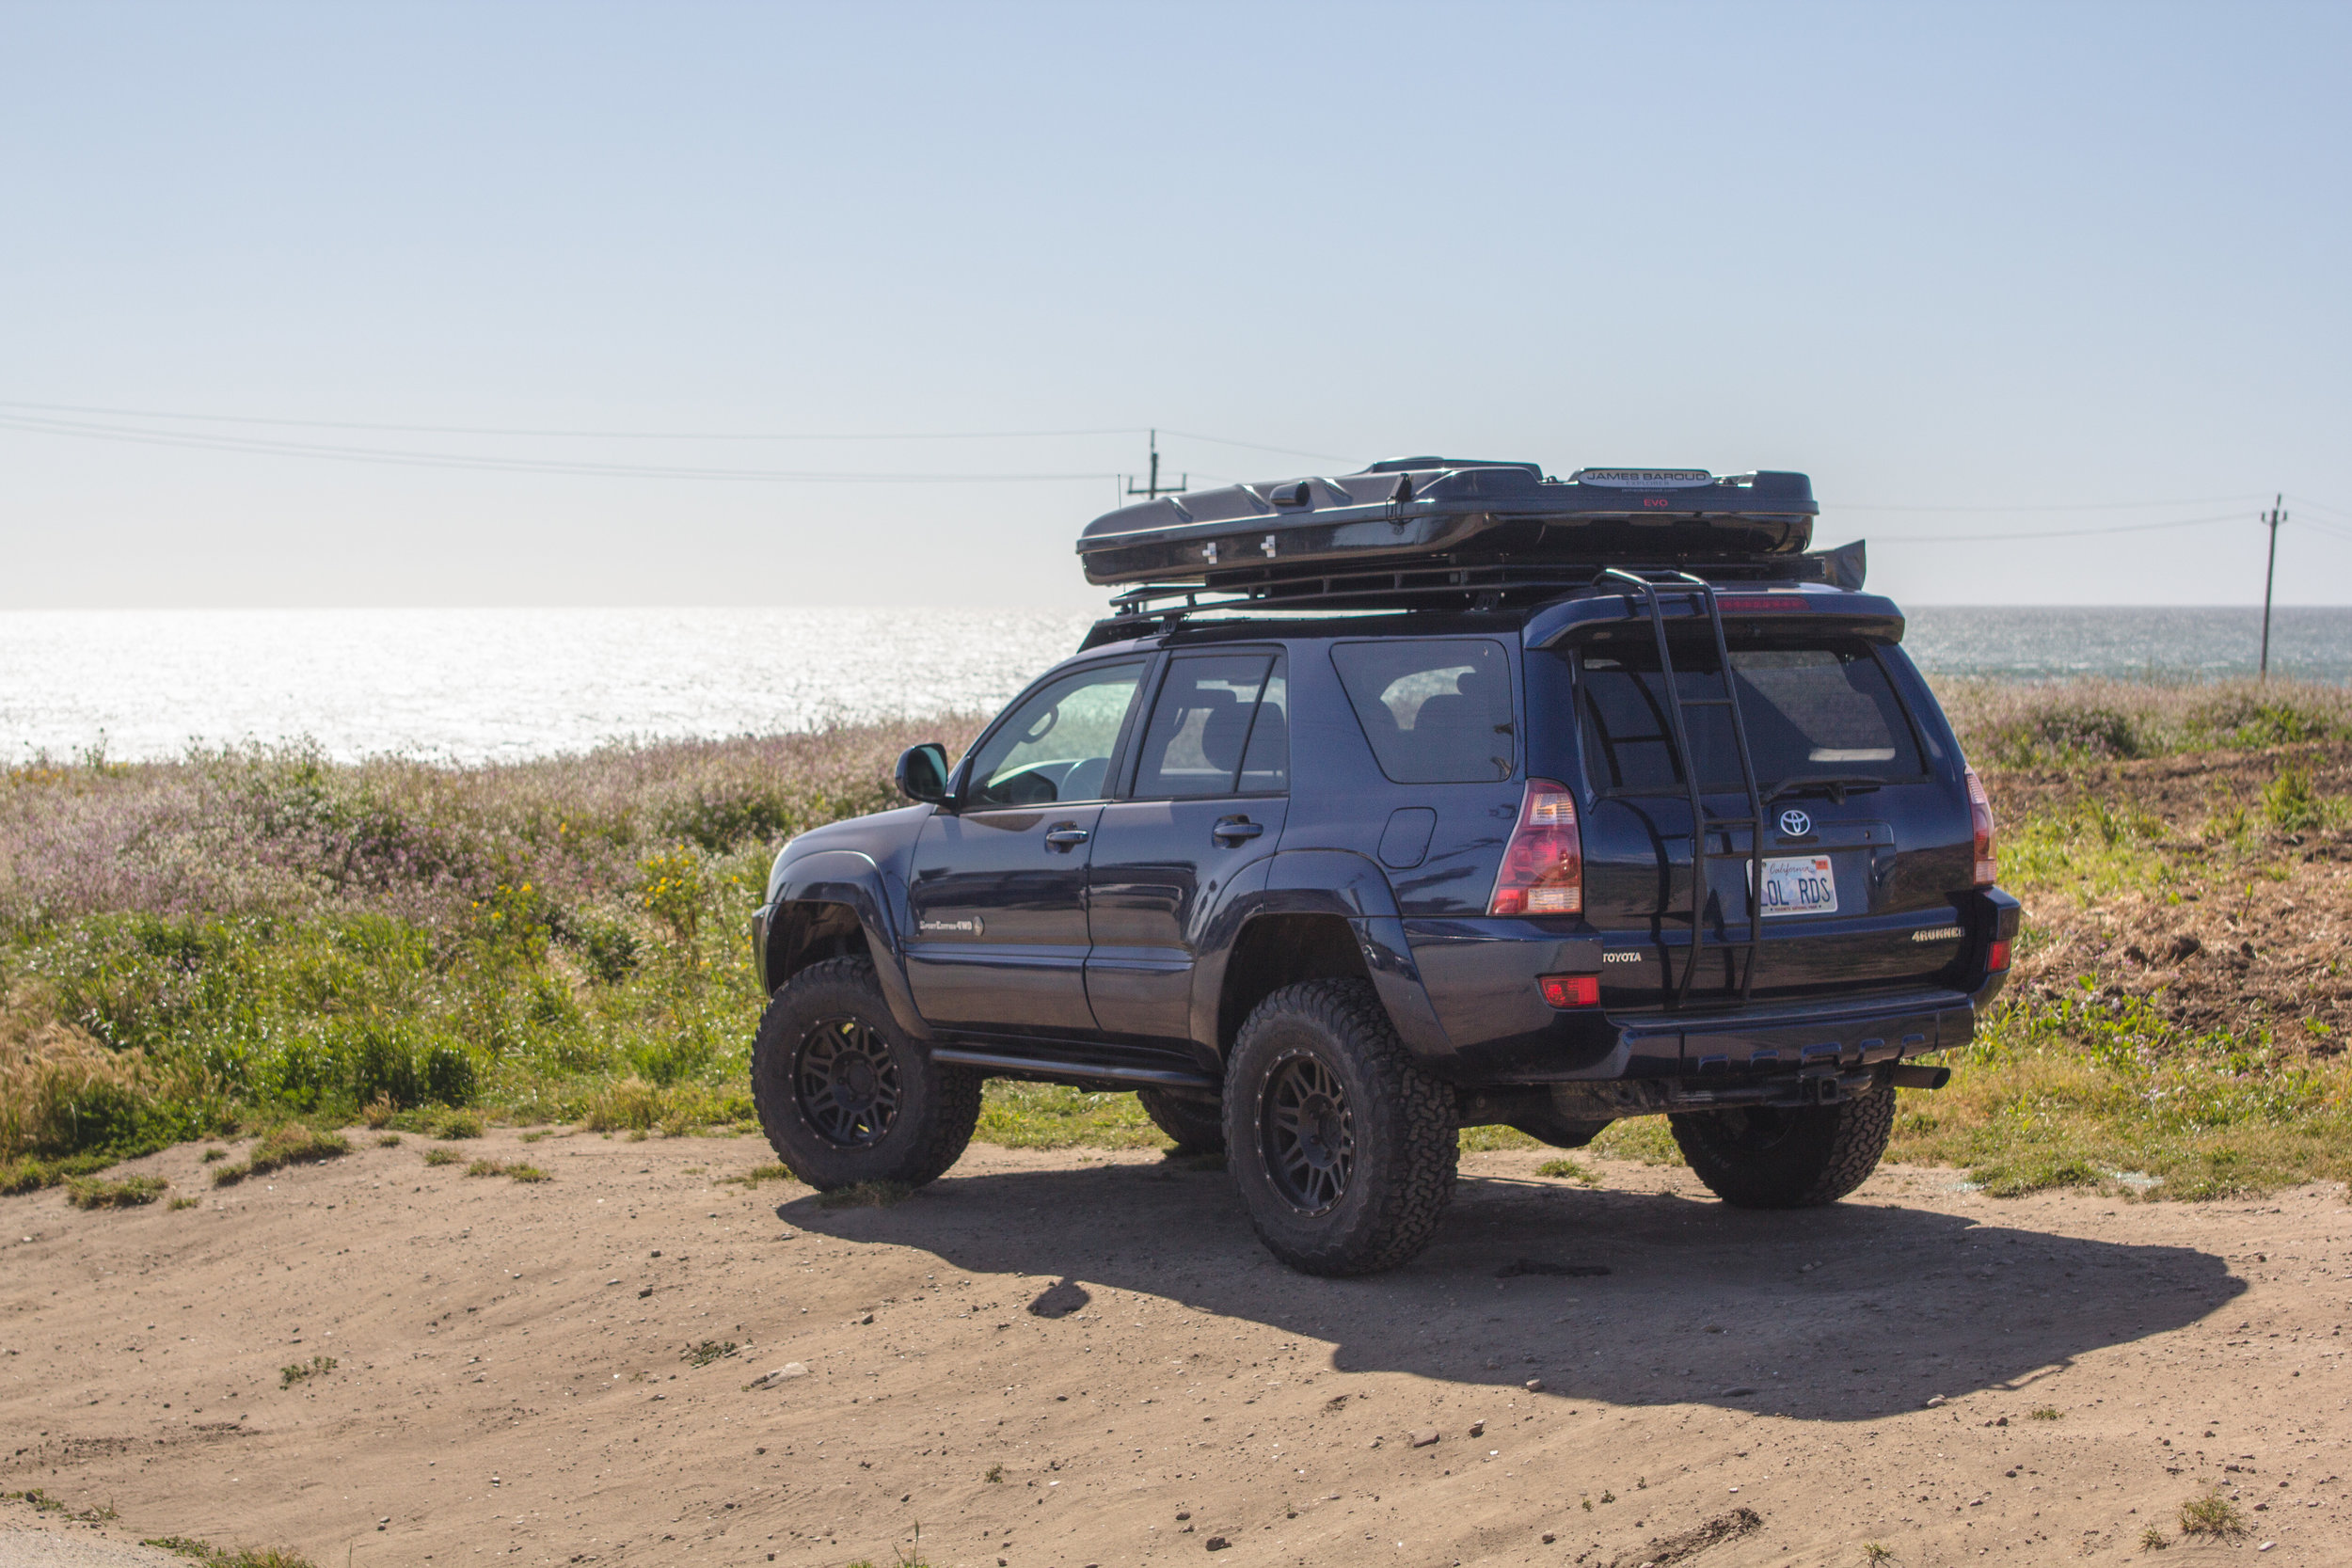 Part 1 - The Search For A New Roof Top Tent & Review: James Baroud Explorer u2014 TheAdventureIndex.com